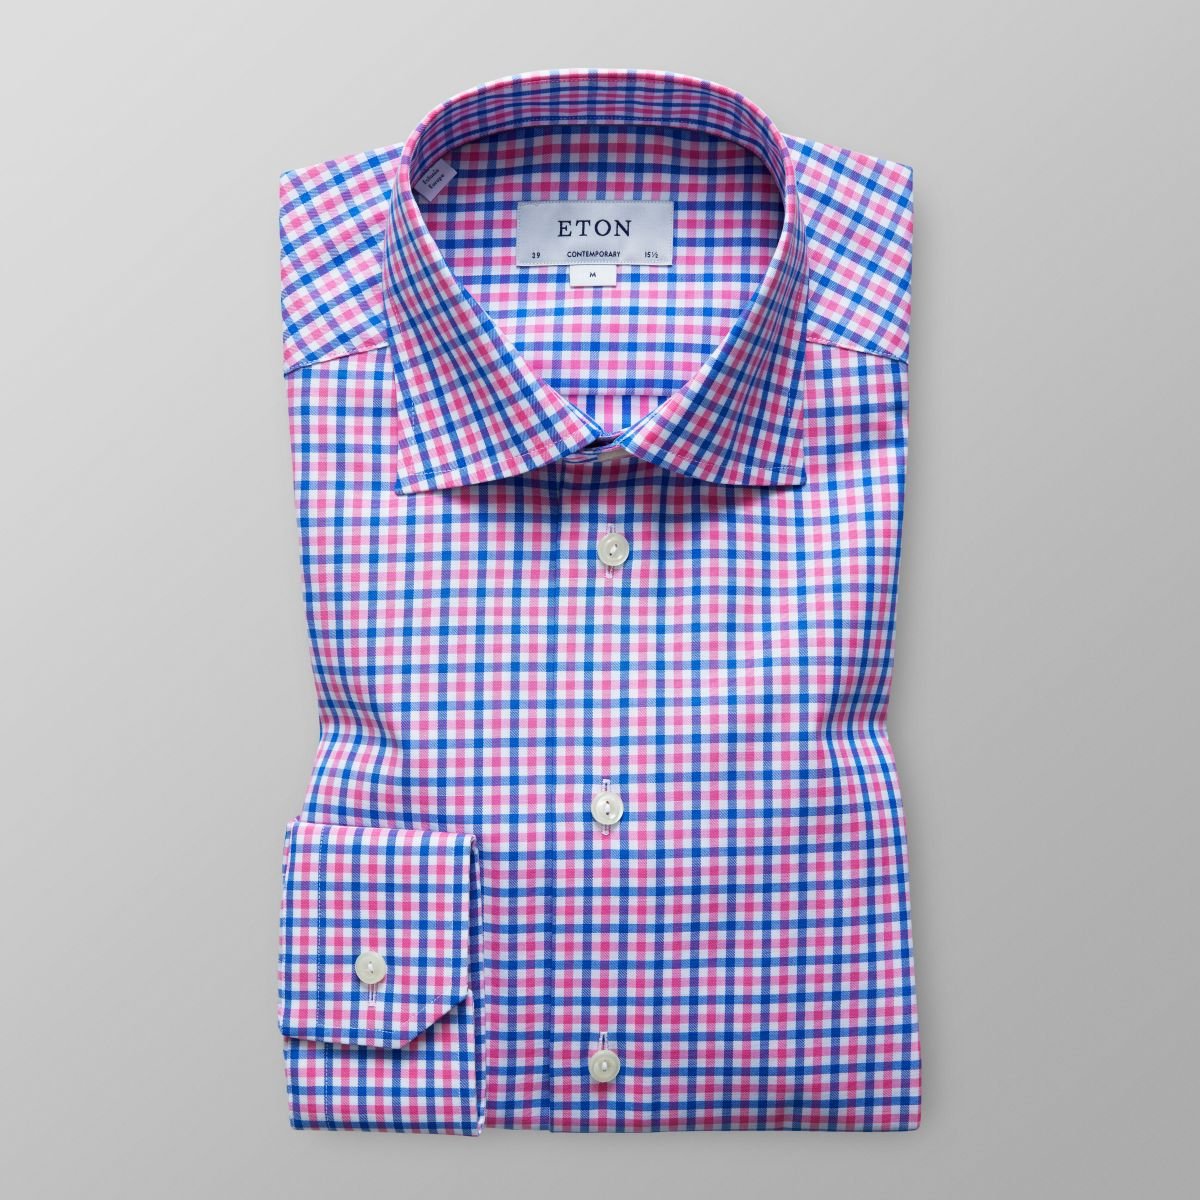 Blue & Pink Check Shirt - Contemporary fit | Eton Shirts US